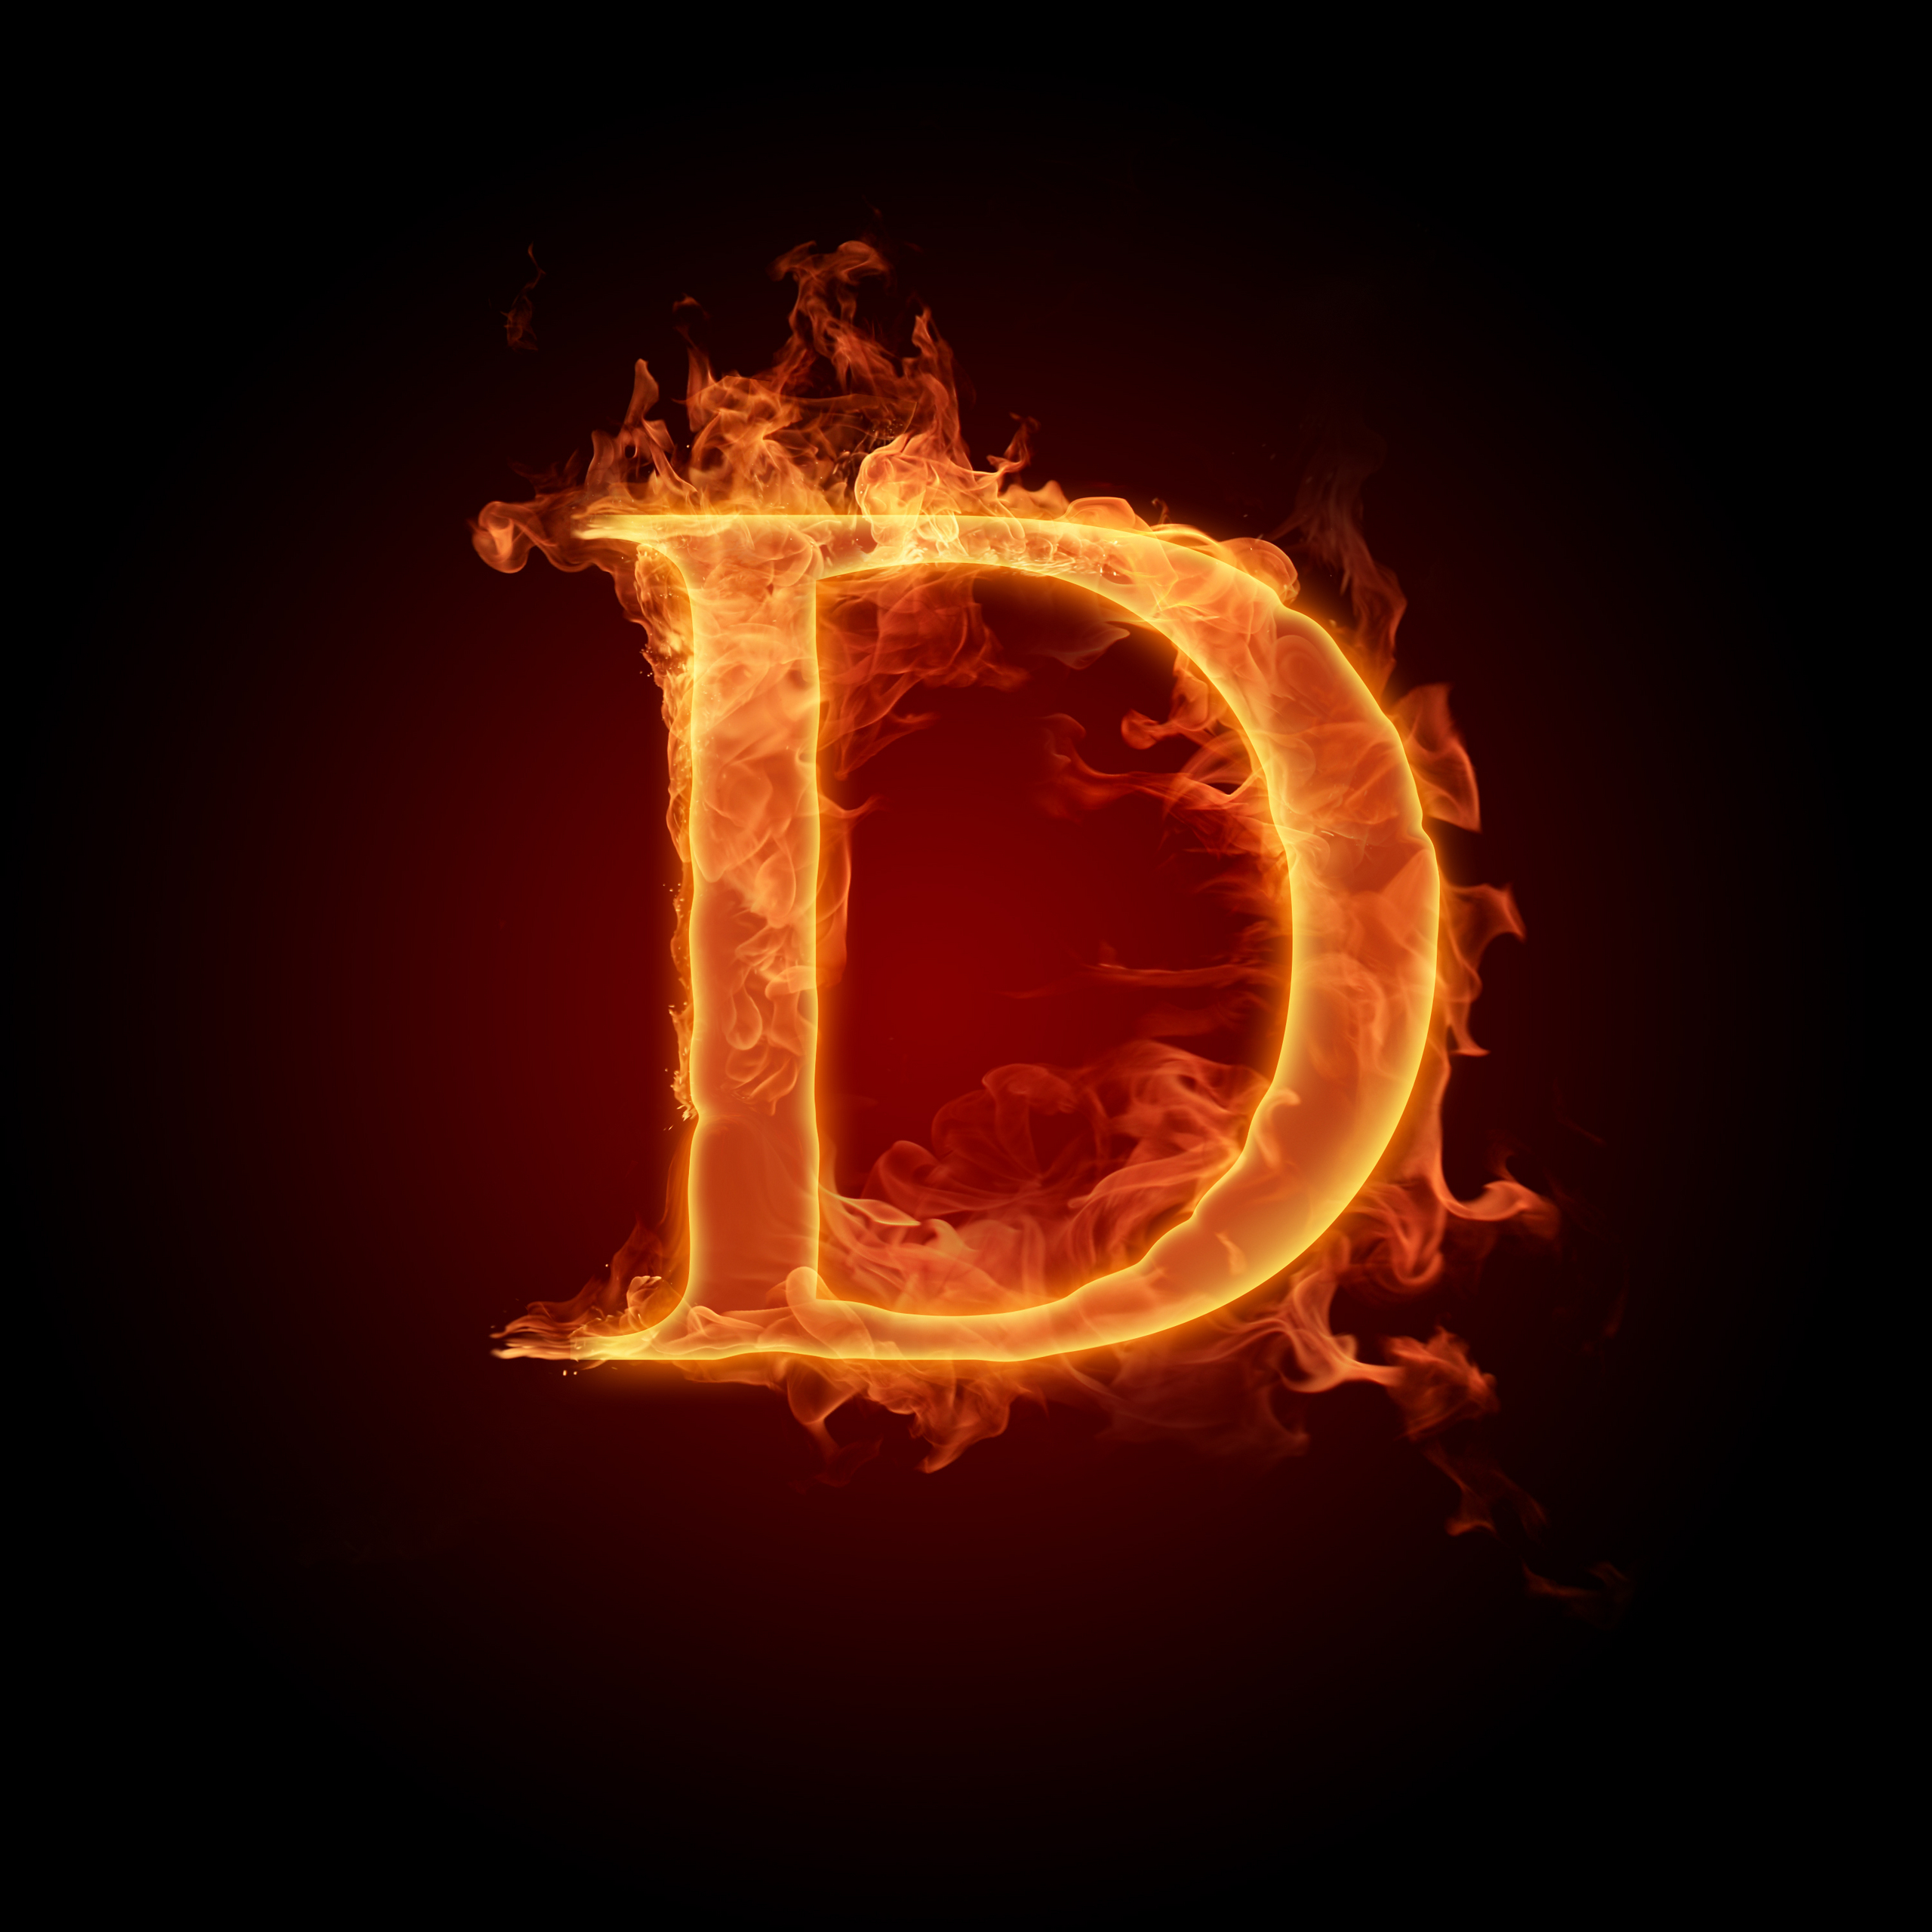 graphic relating to D&d Printable Monster Cards referred to as The letter D - The Letter D Picture (22215873) - Fanpop